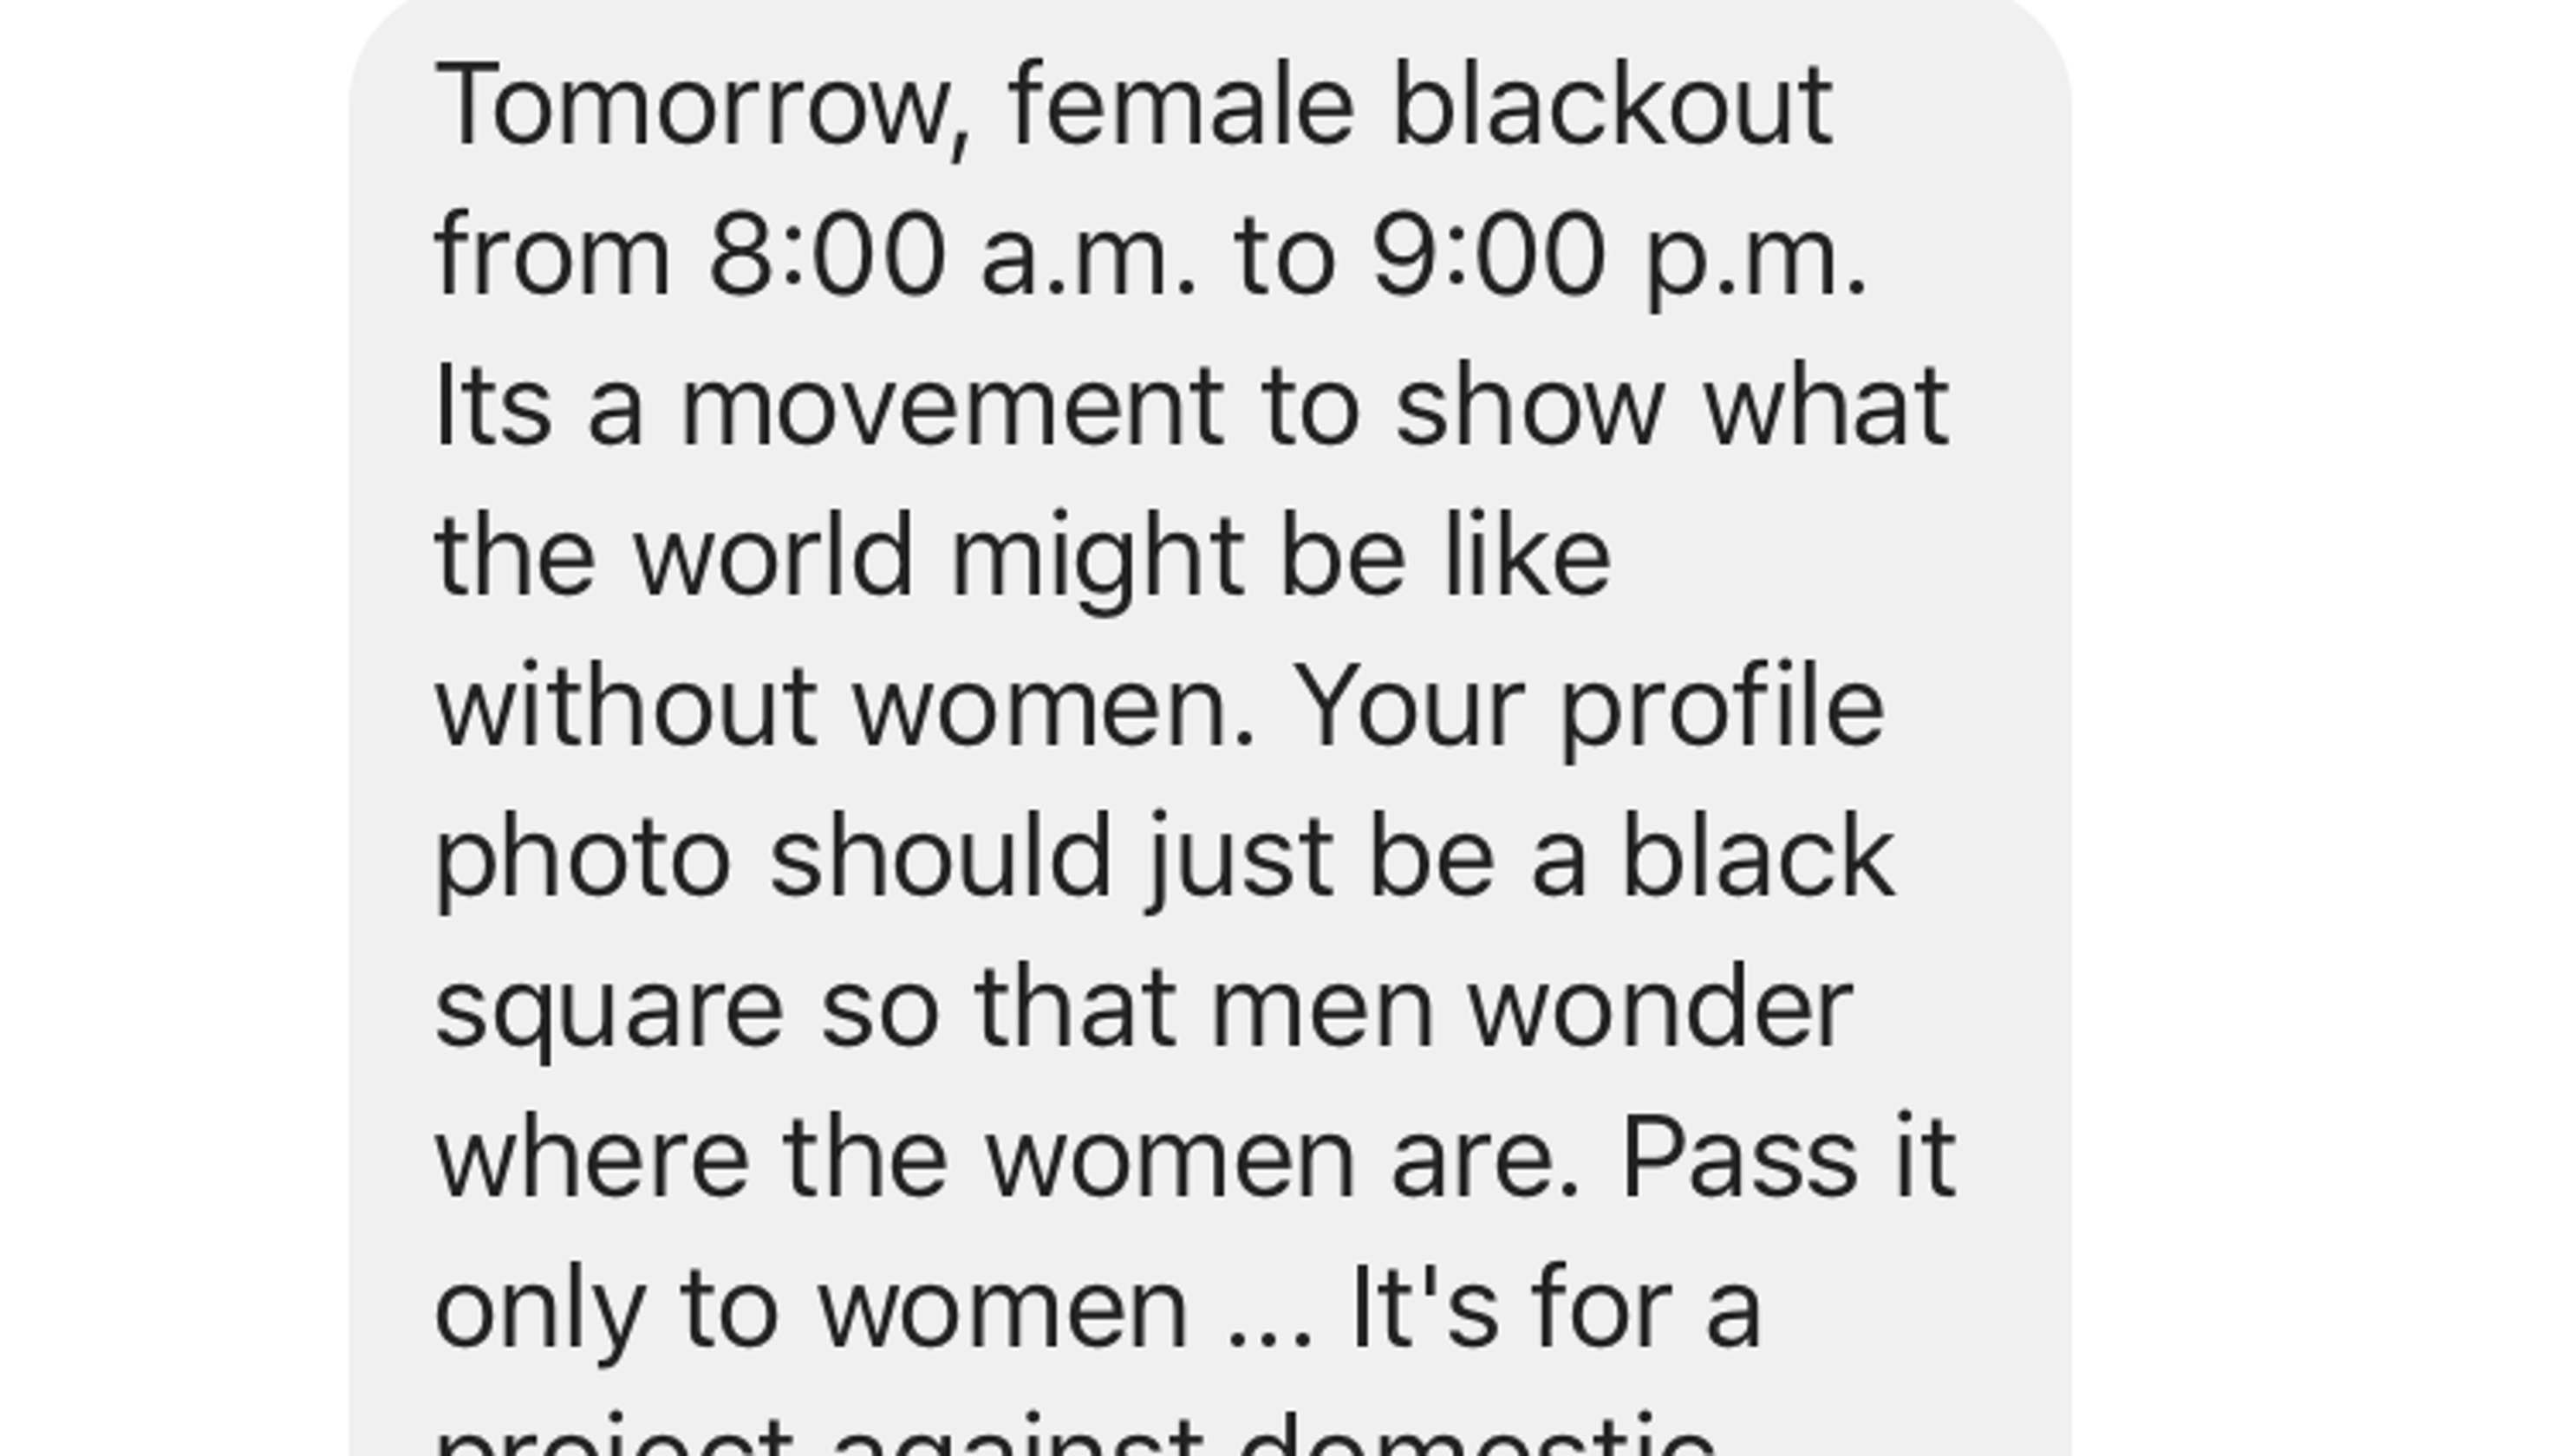 Female blackout on Facebook Sunday protesting domestic violence